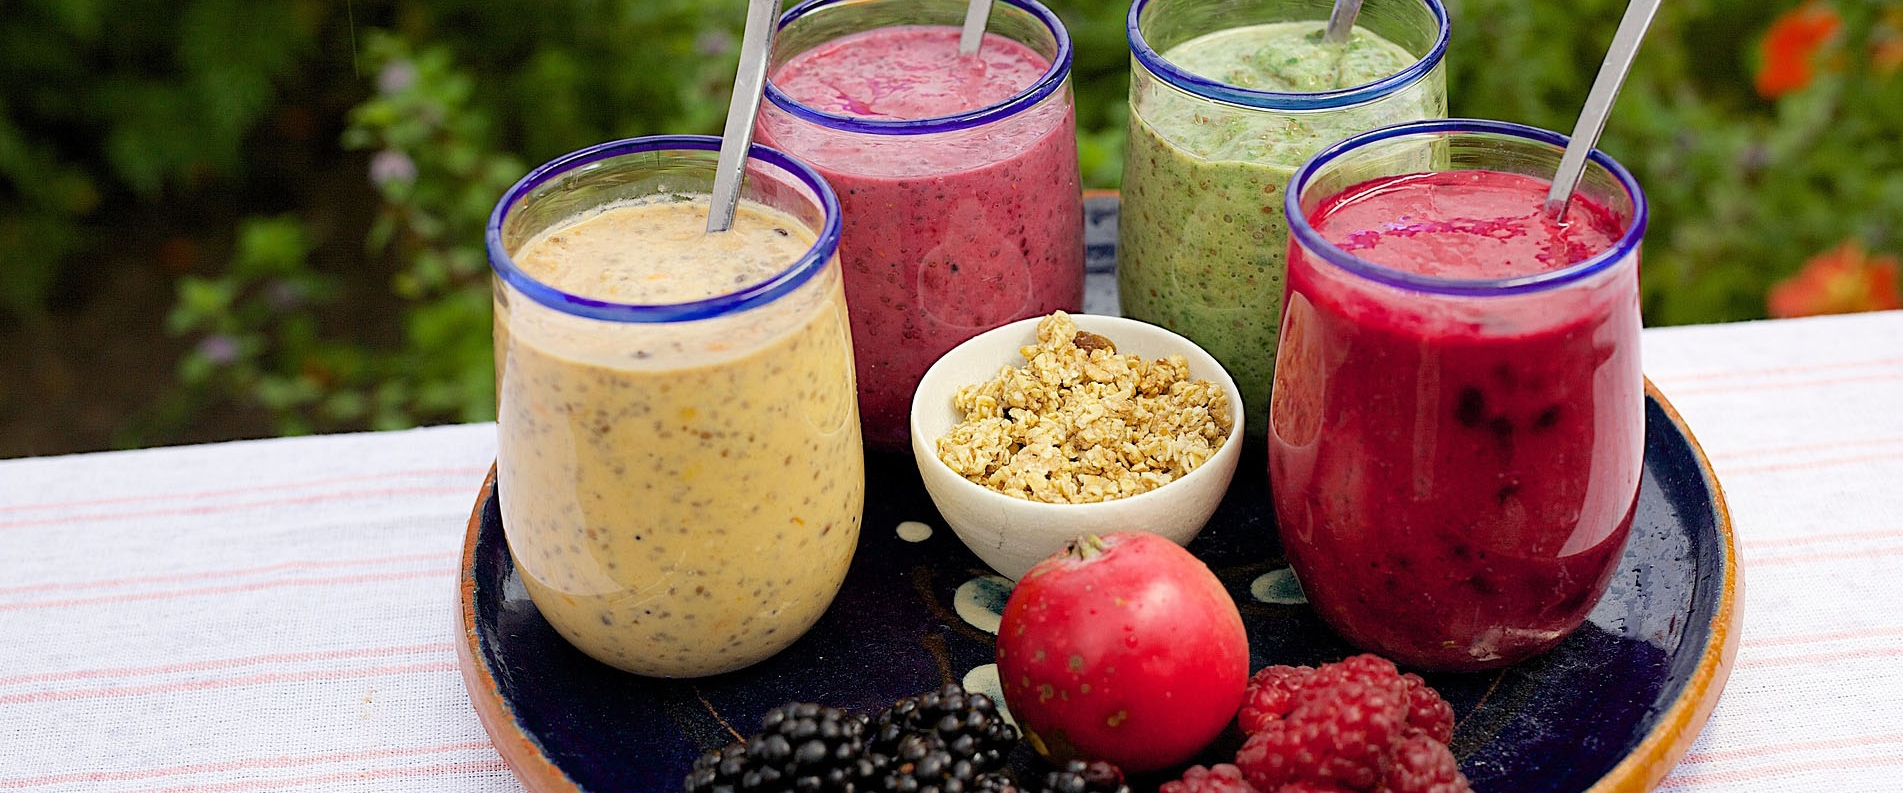 What to Do with Fruits in Cyprus: Smoothies, Desserts, and Much More